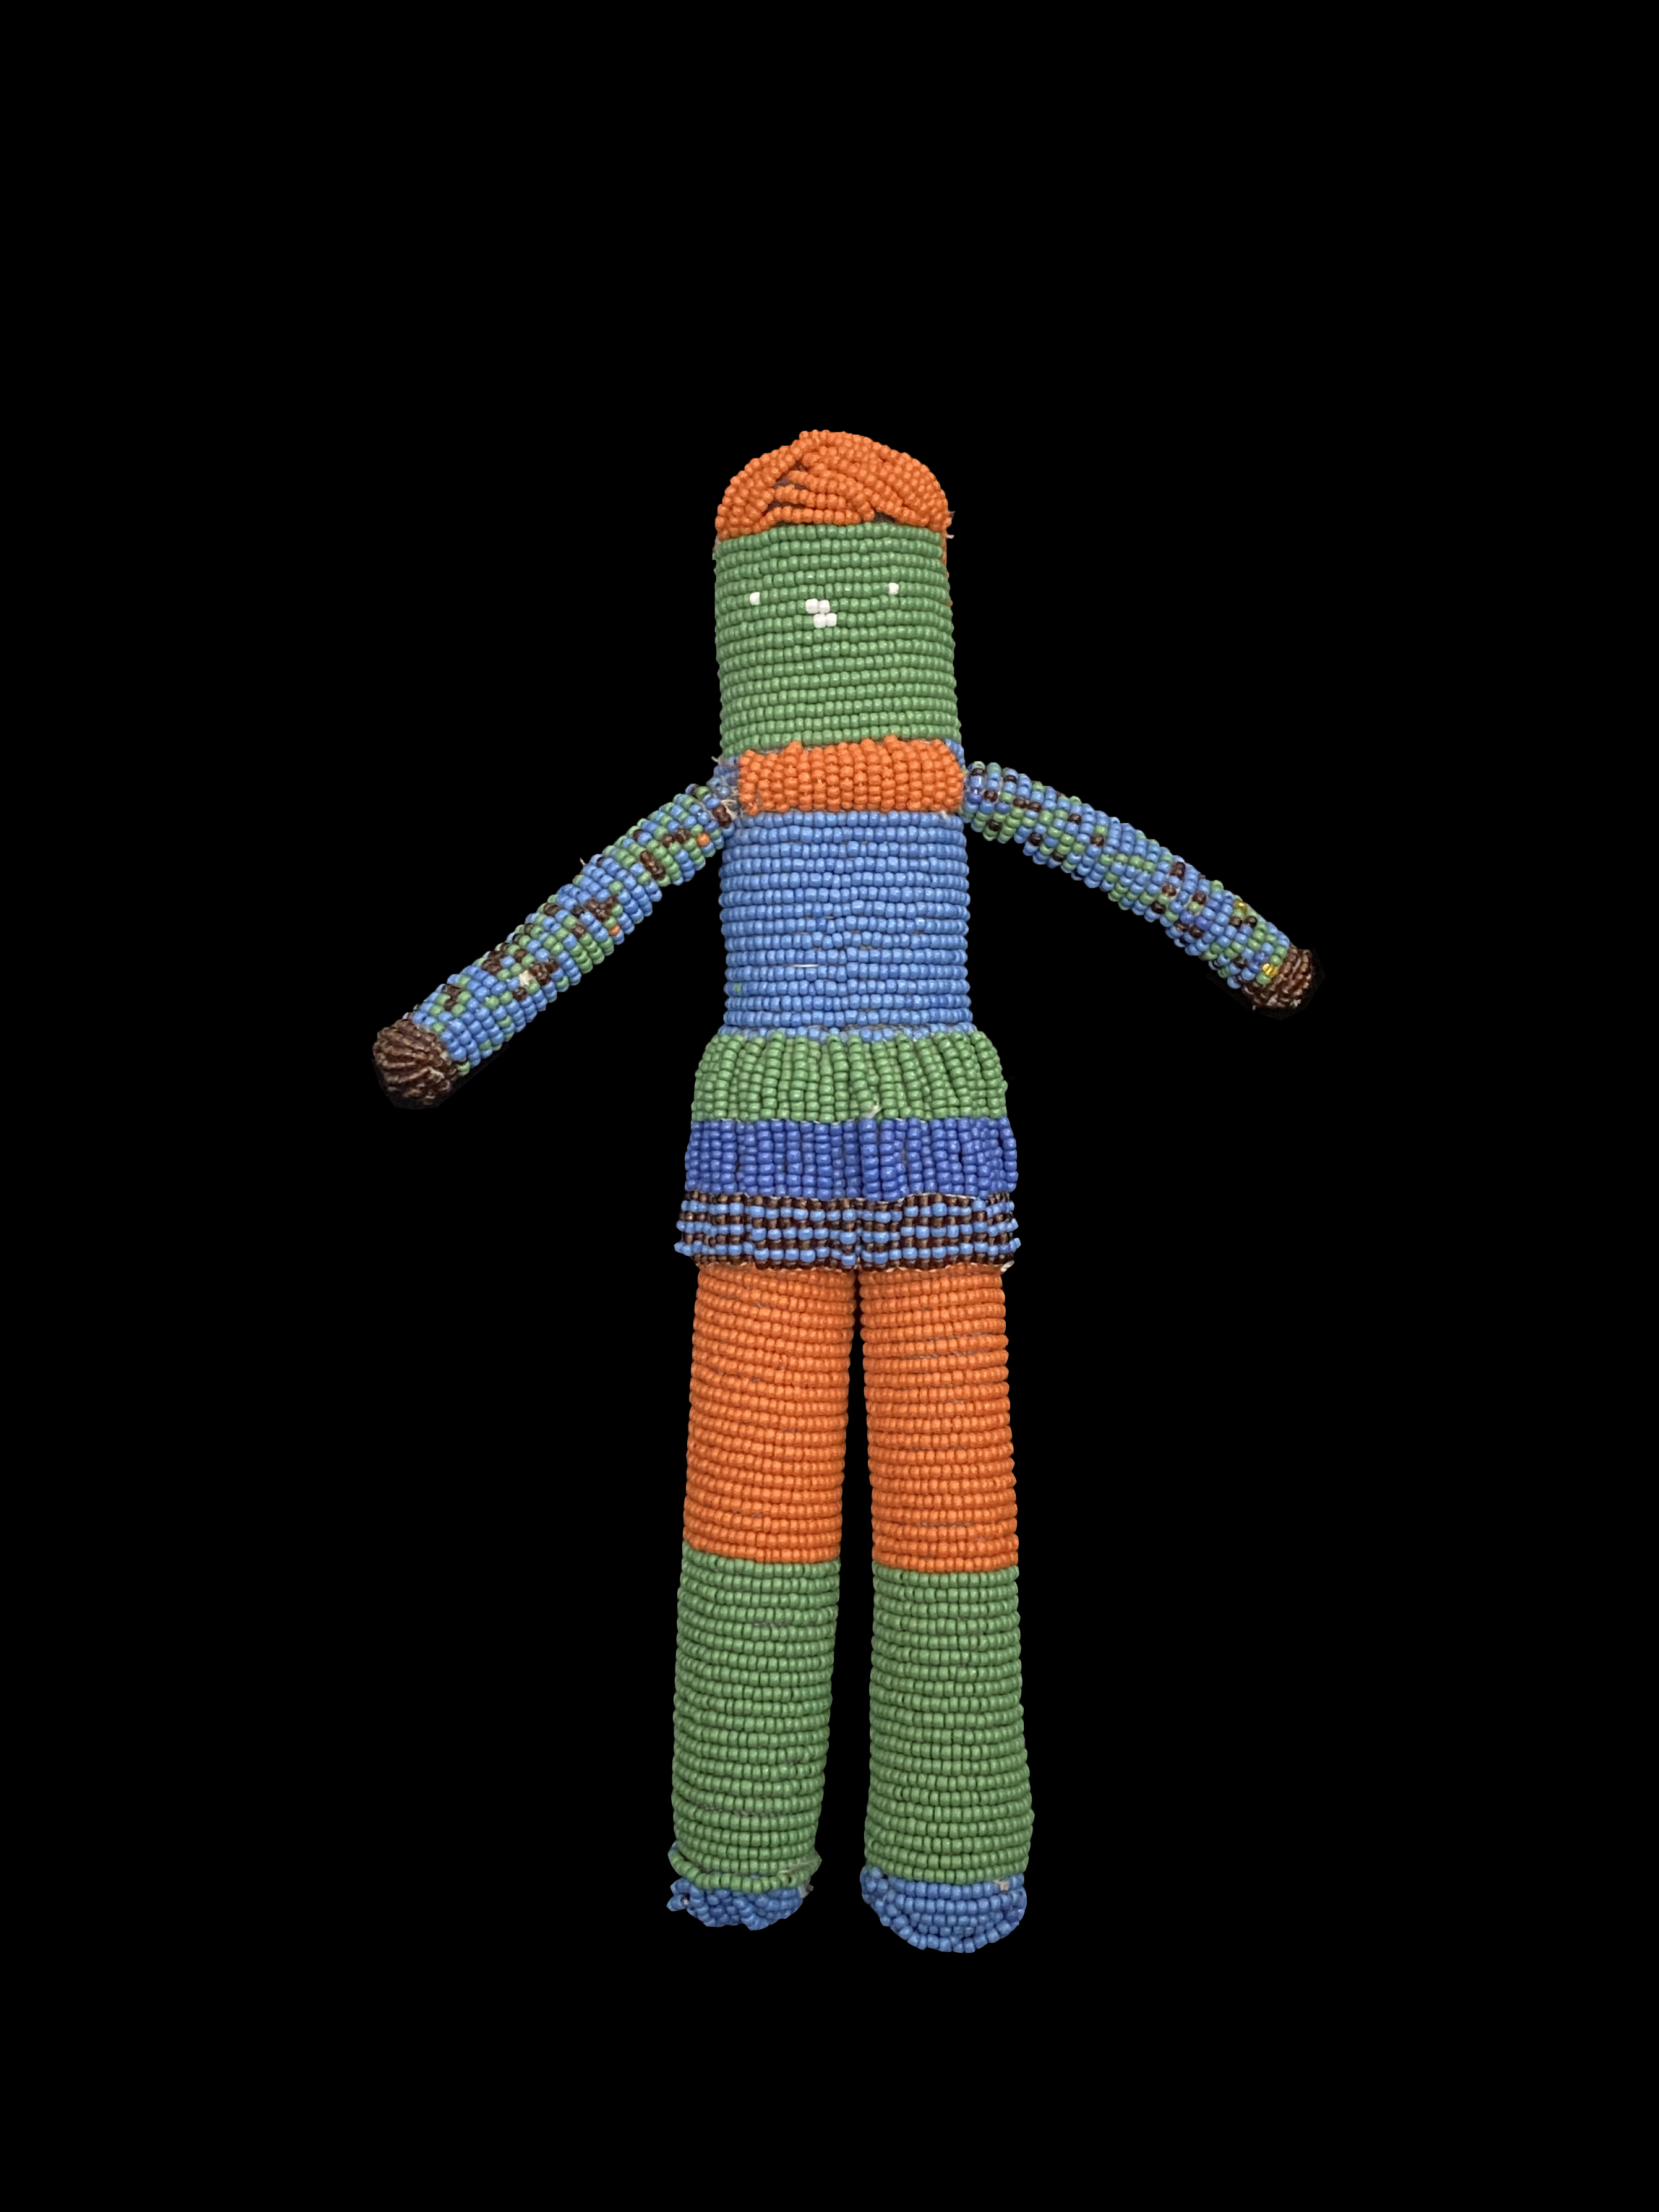 Beaded Doll - South Africa